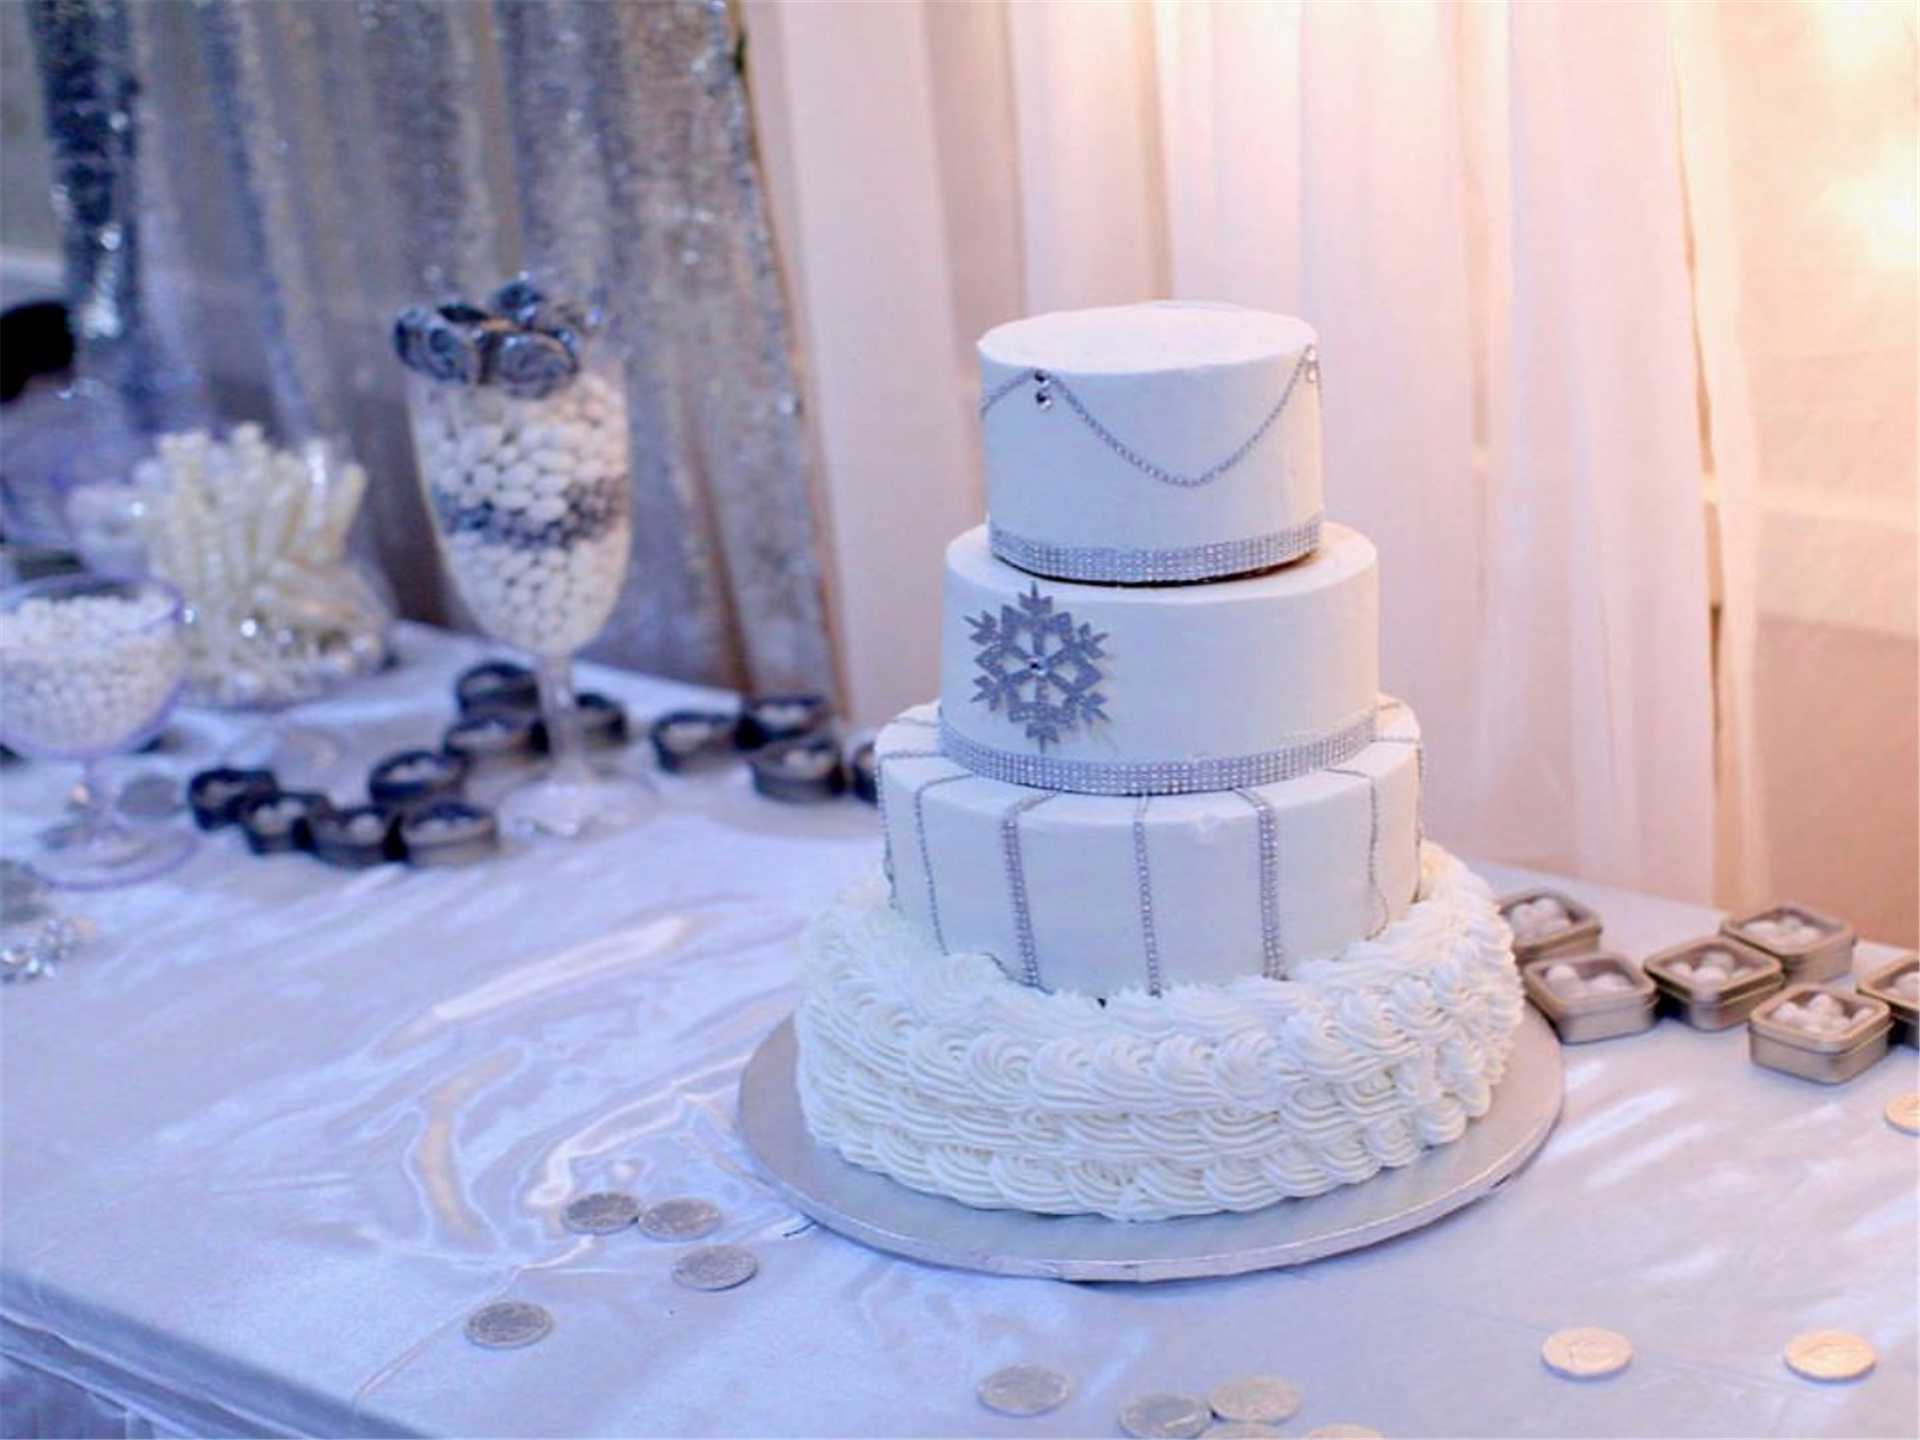 wedding cake with a snowflake on it